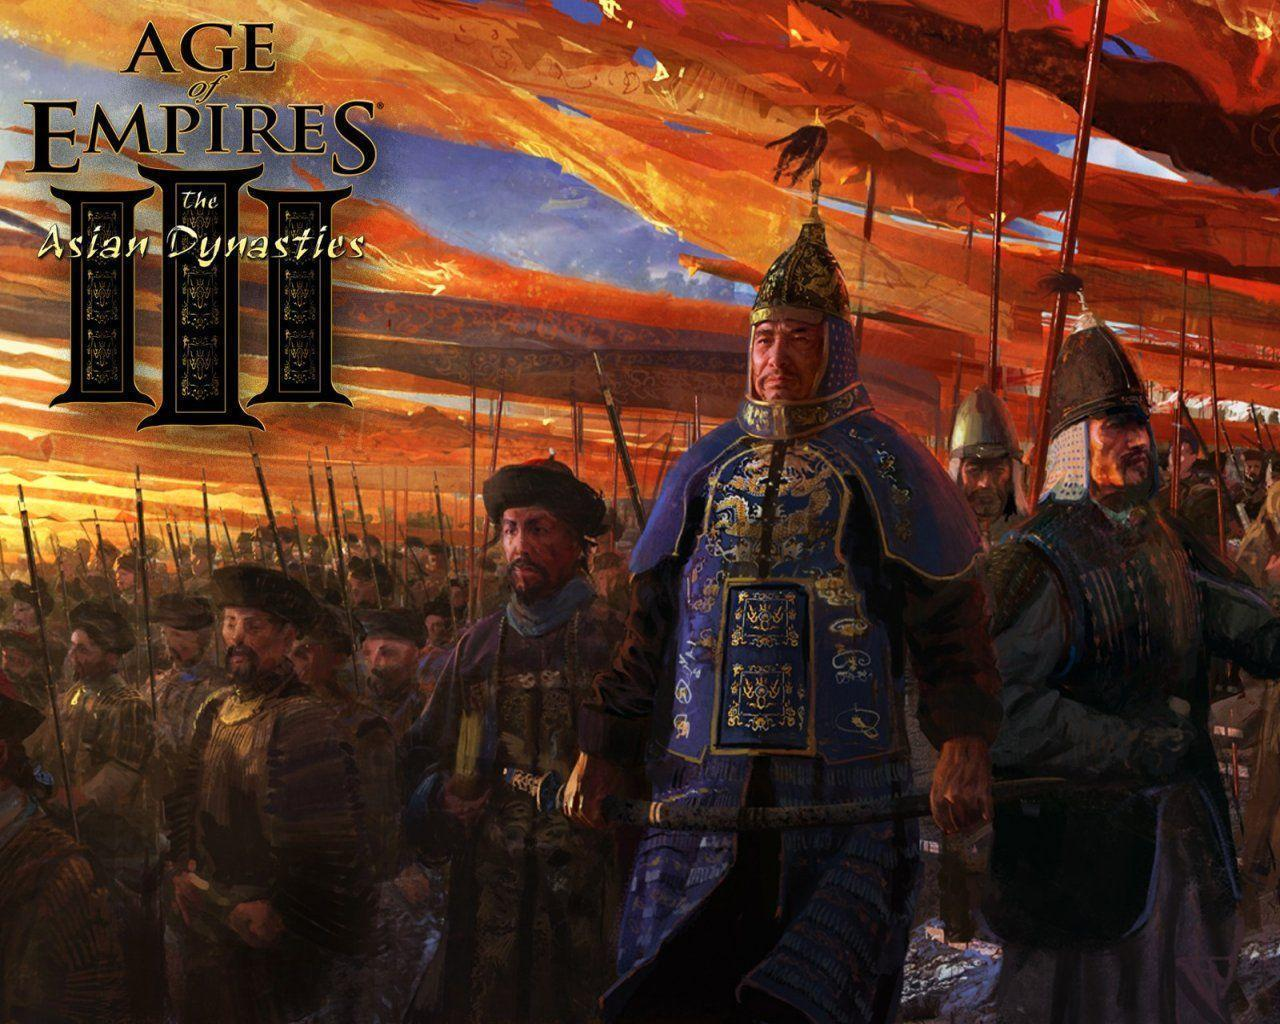 Wallpapers Age of Empires Age of Empires 3 Games Image #111794 ...